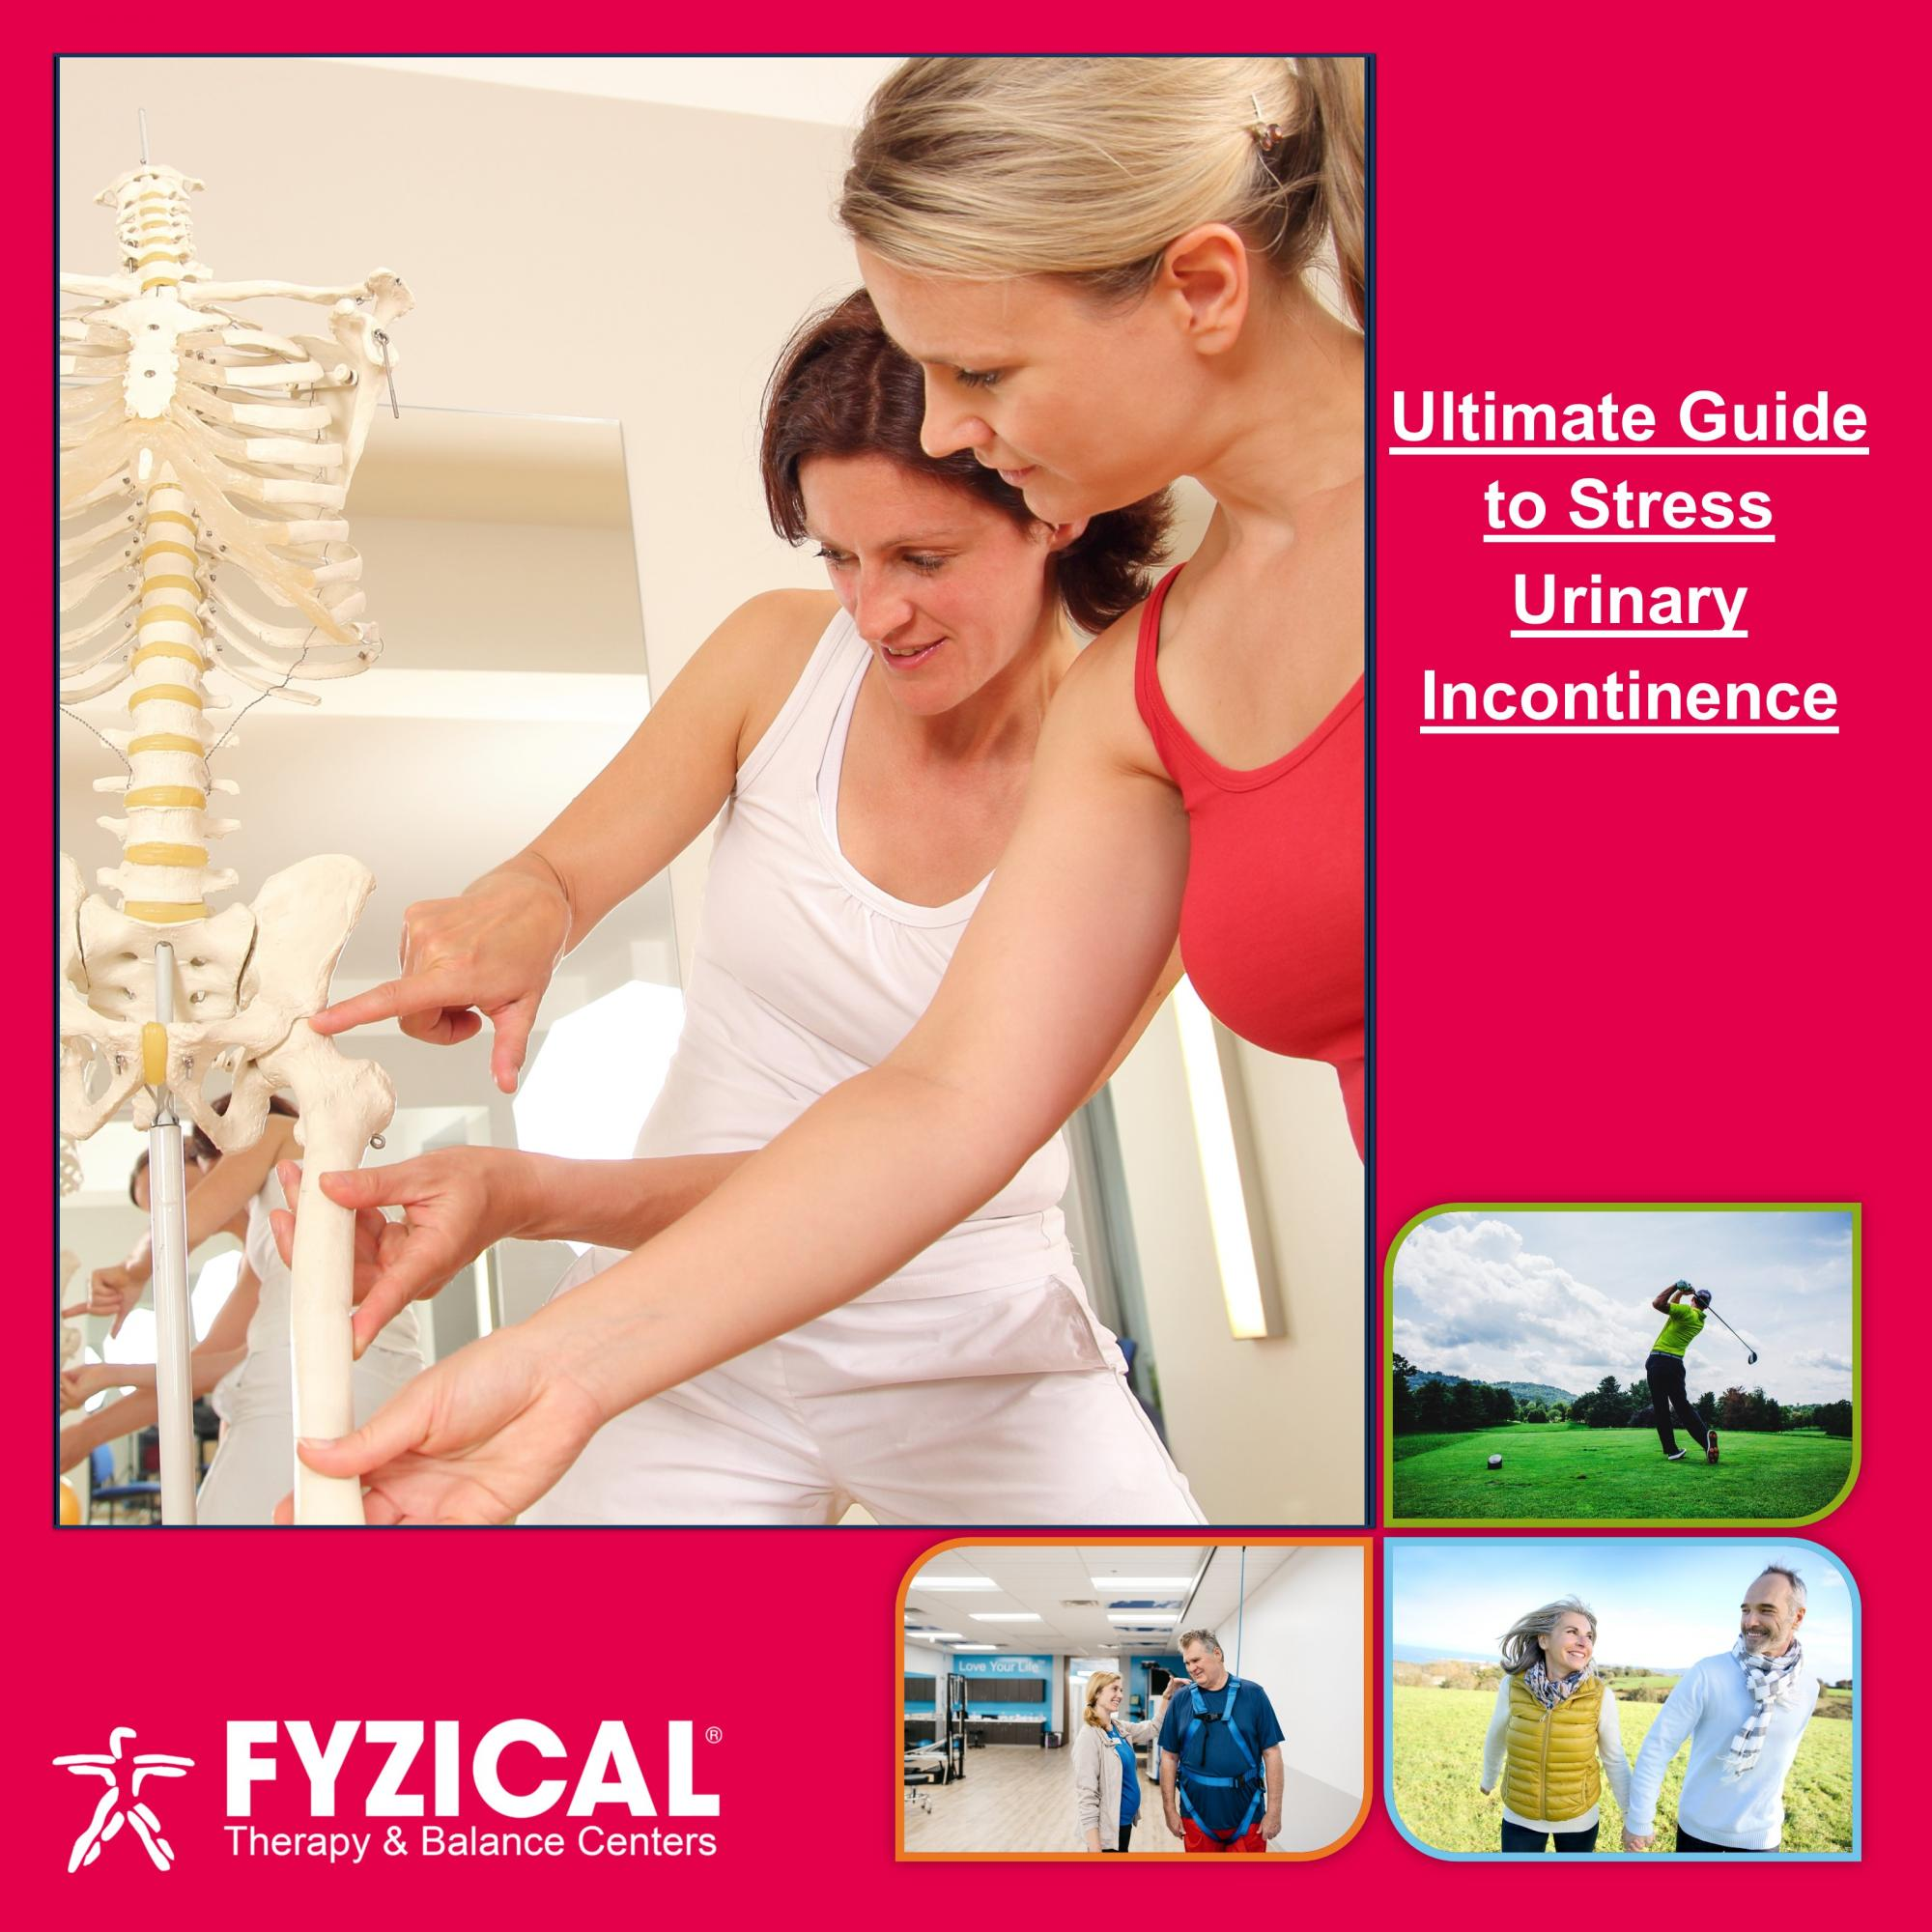 """Ultimate Guide to Stress Urinary Incontinence. What is Stress Incontinence? Why is Stress Incontinence sometimes called """"exercised induced incontinence?"""" What makes stress incontinence worse? How do you treat stress incontinence?"""